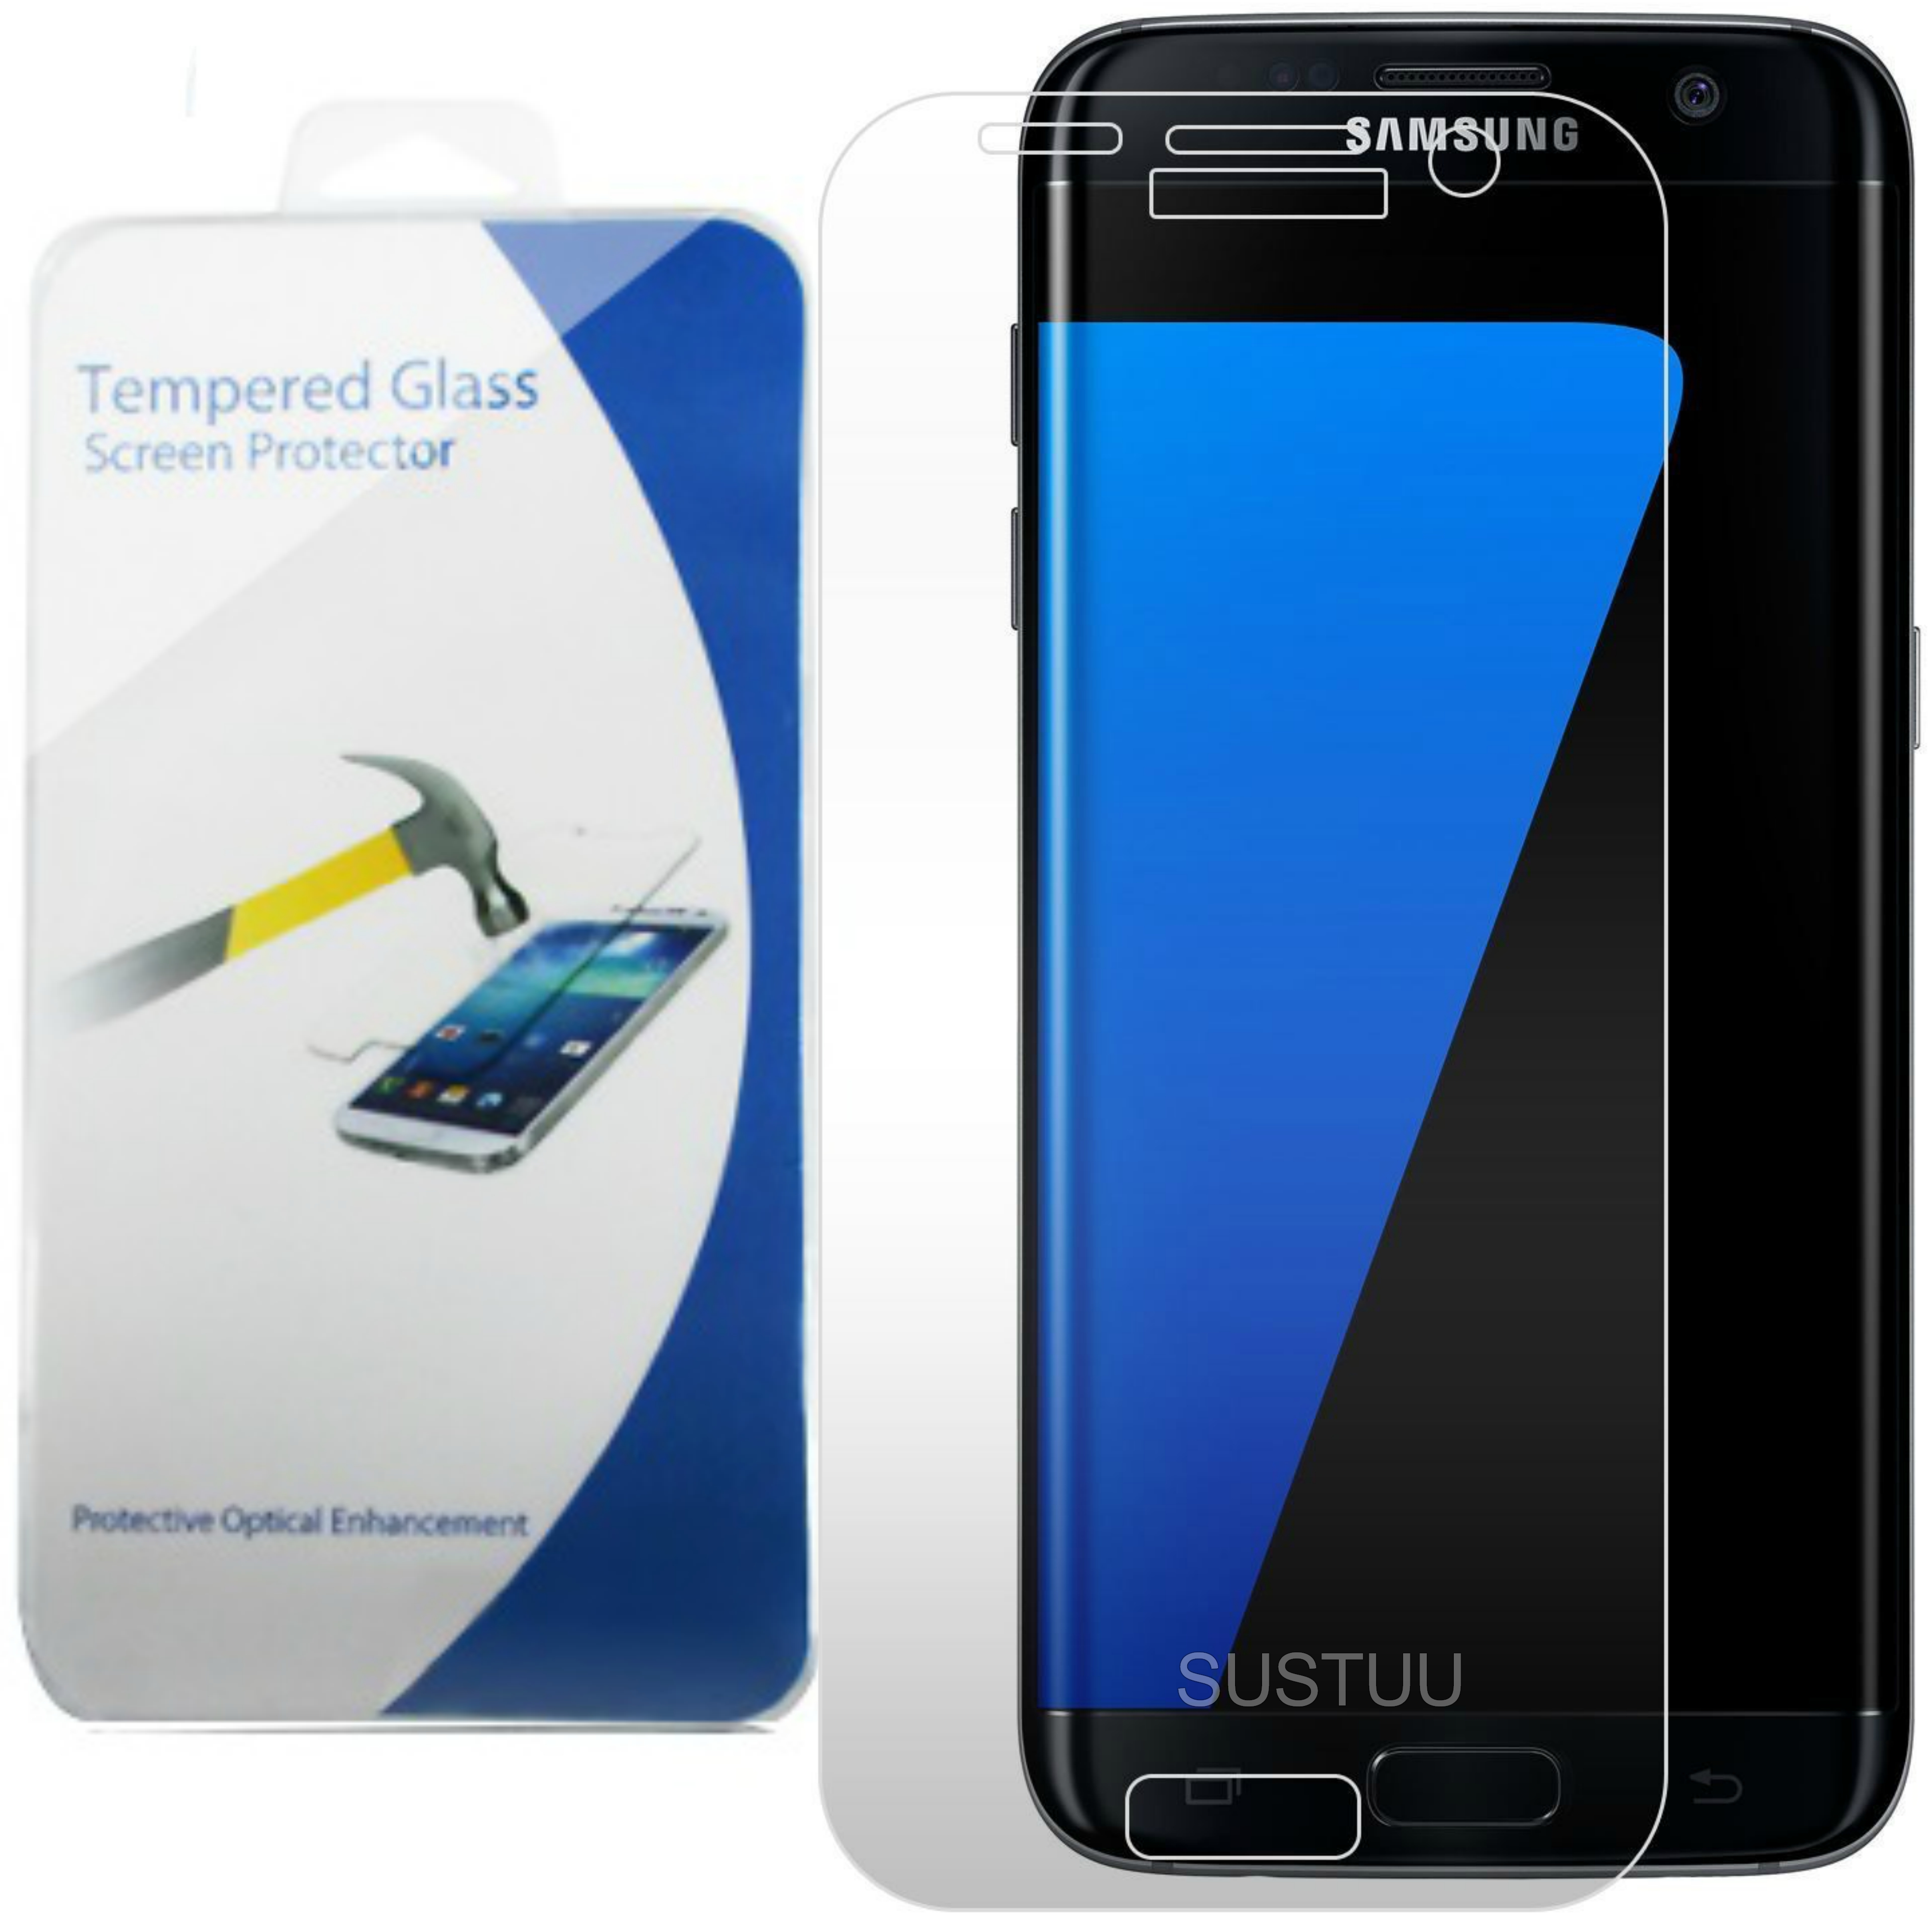 Clear Tempered Glass Screen Protector | Hard Tough Film Guard | Samsung Galaxy S7 | New